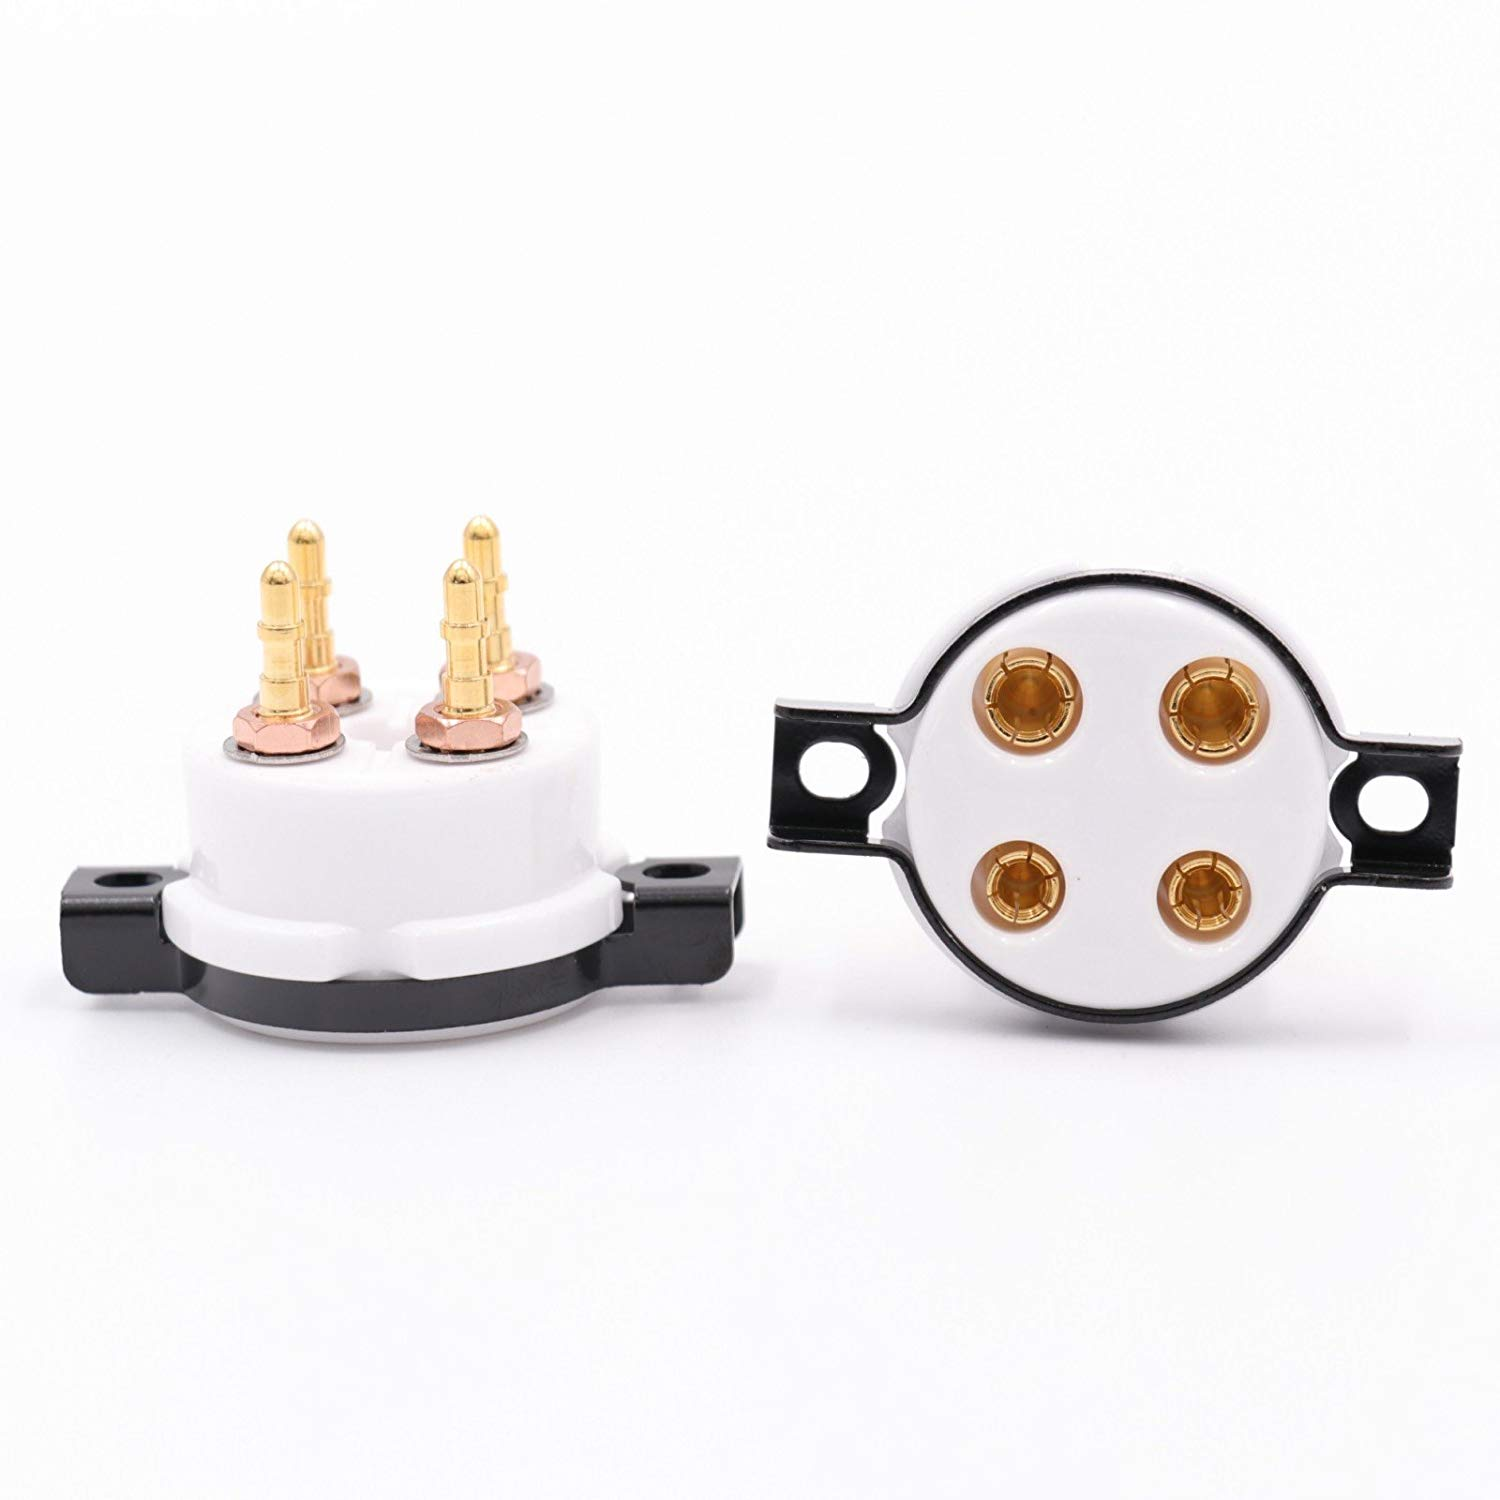 300b 2a3 For Large Four-leg Flat Gold-plated Tube Socket Free Shipping Electronic Components & Supplies